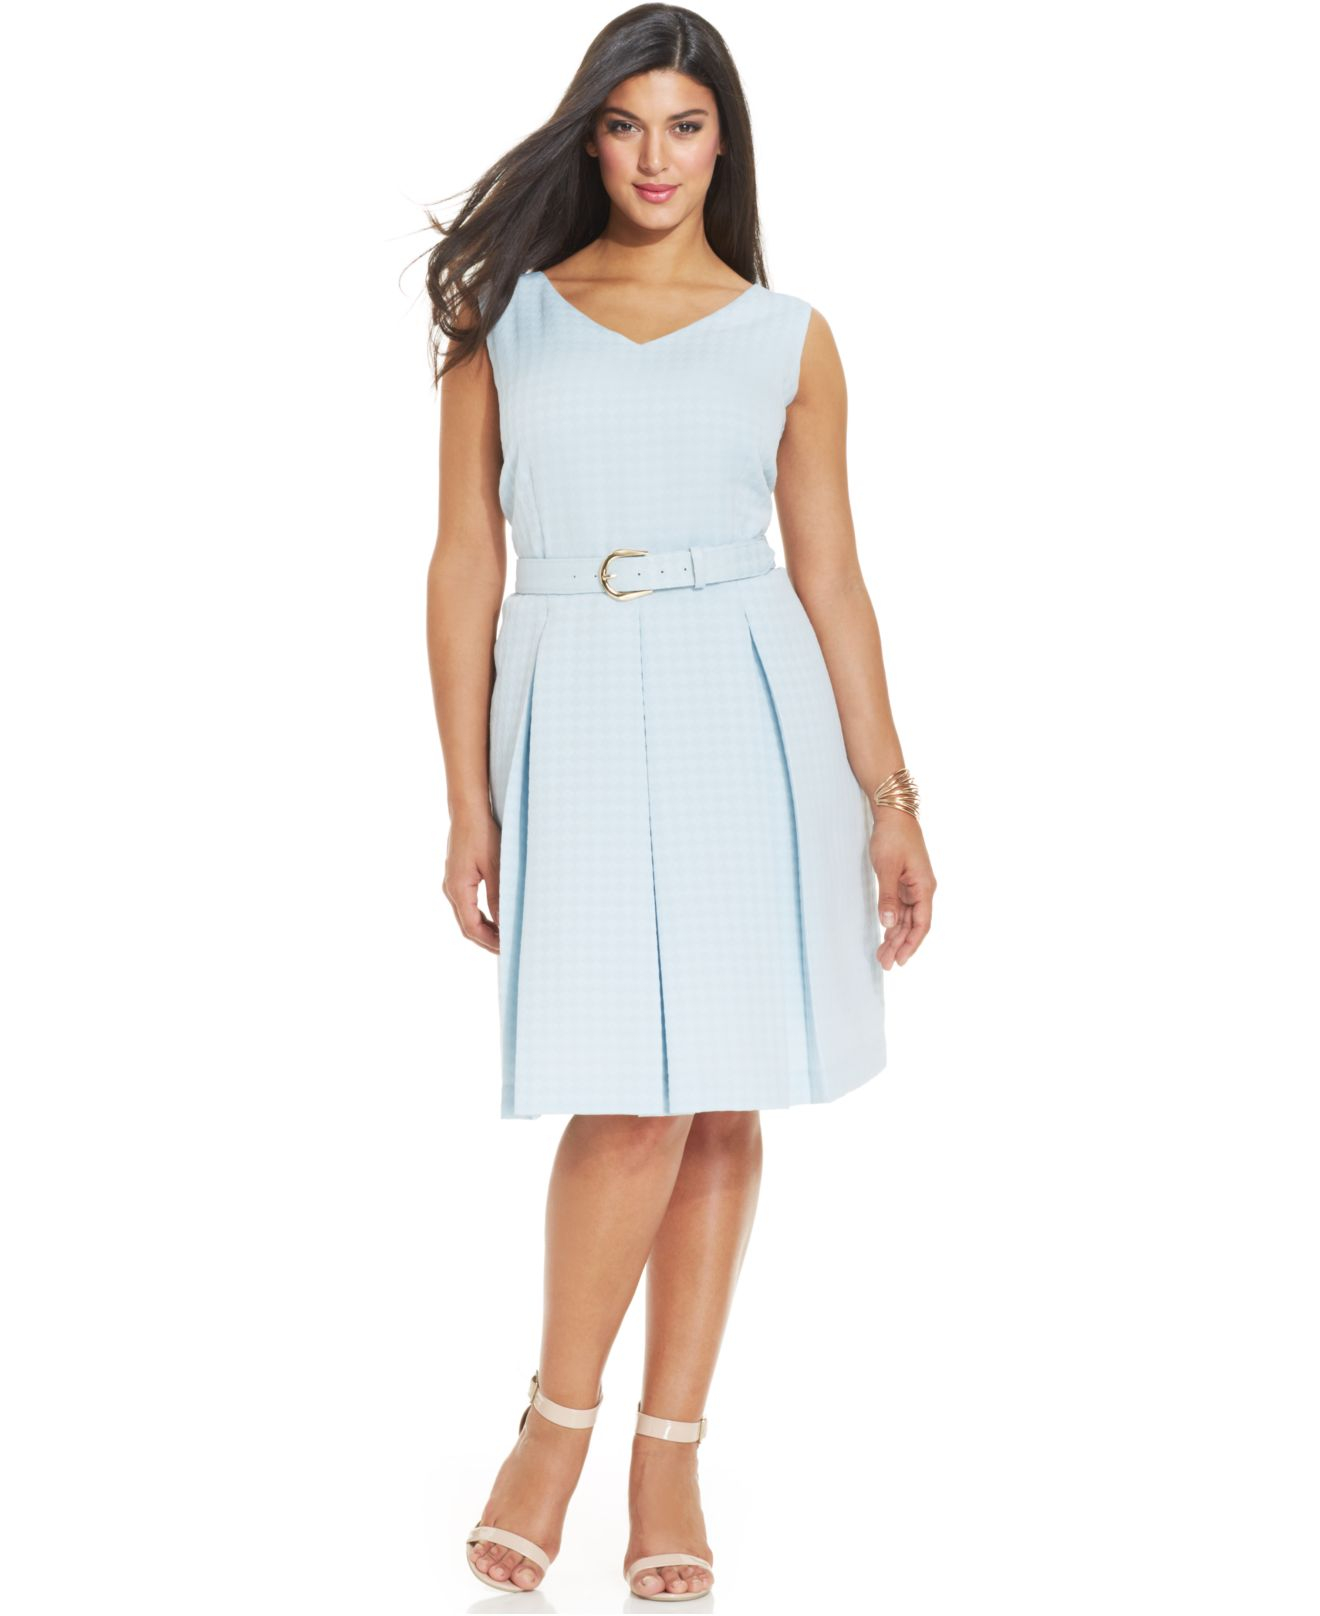 Tahari White Asl Plus Size Jacquard Pleated Dress